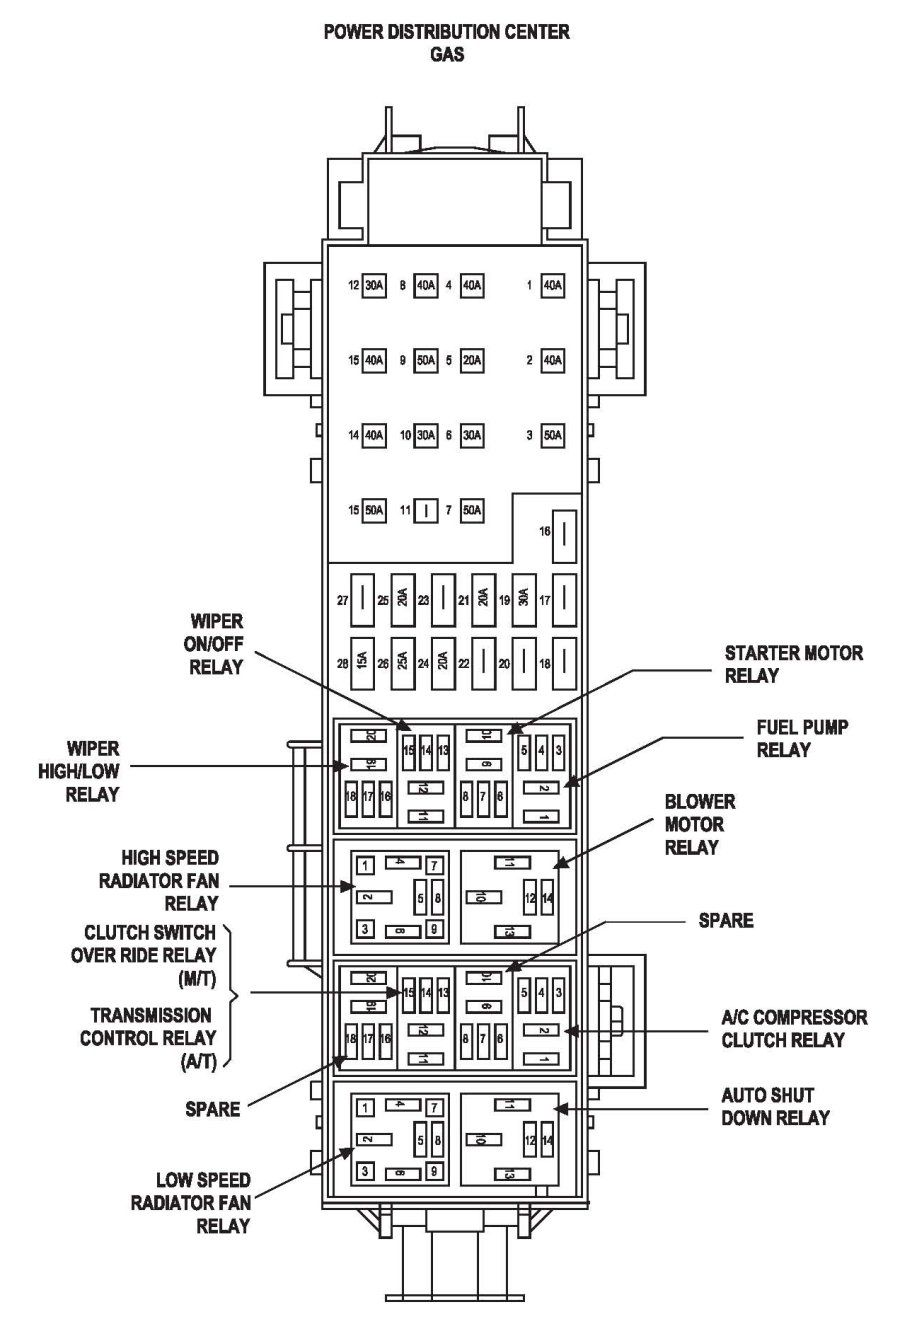 b3536c3739783eb19f827744cc42c3c4 jeep liberty fuse box diagram image details jeep liberty jeep liberty fuse box diagram at mifinder.co